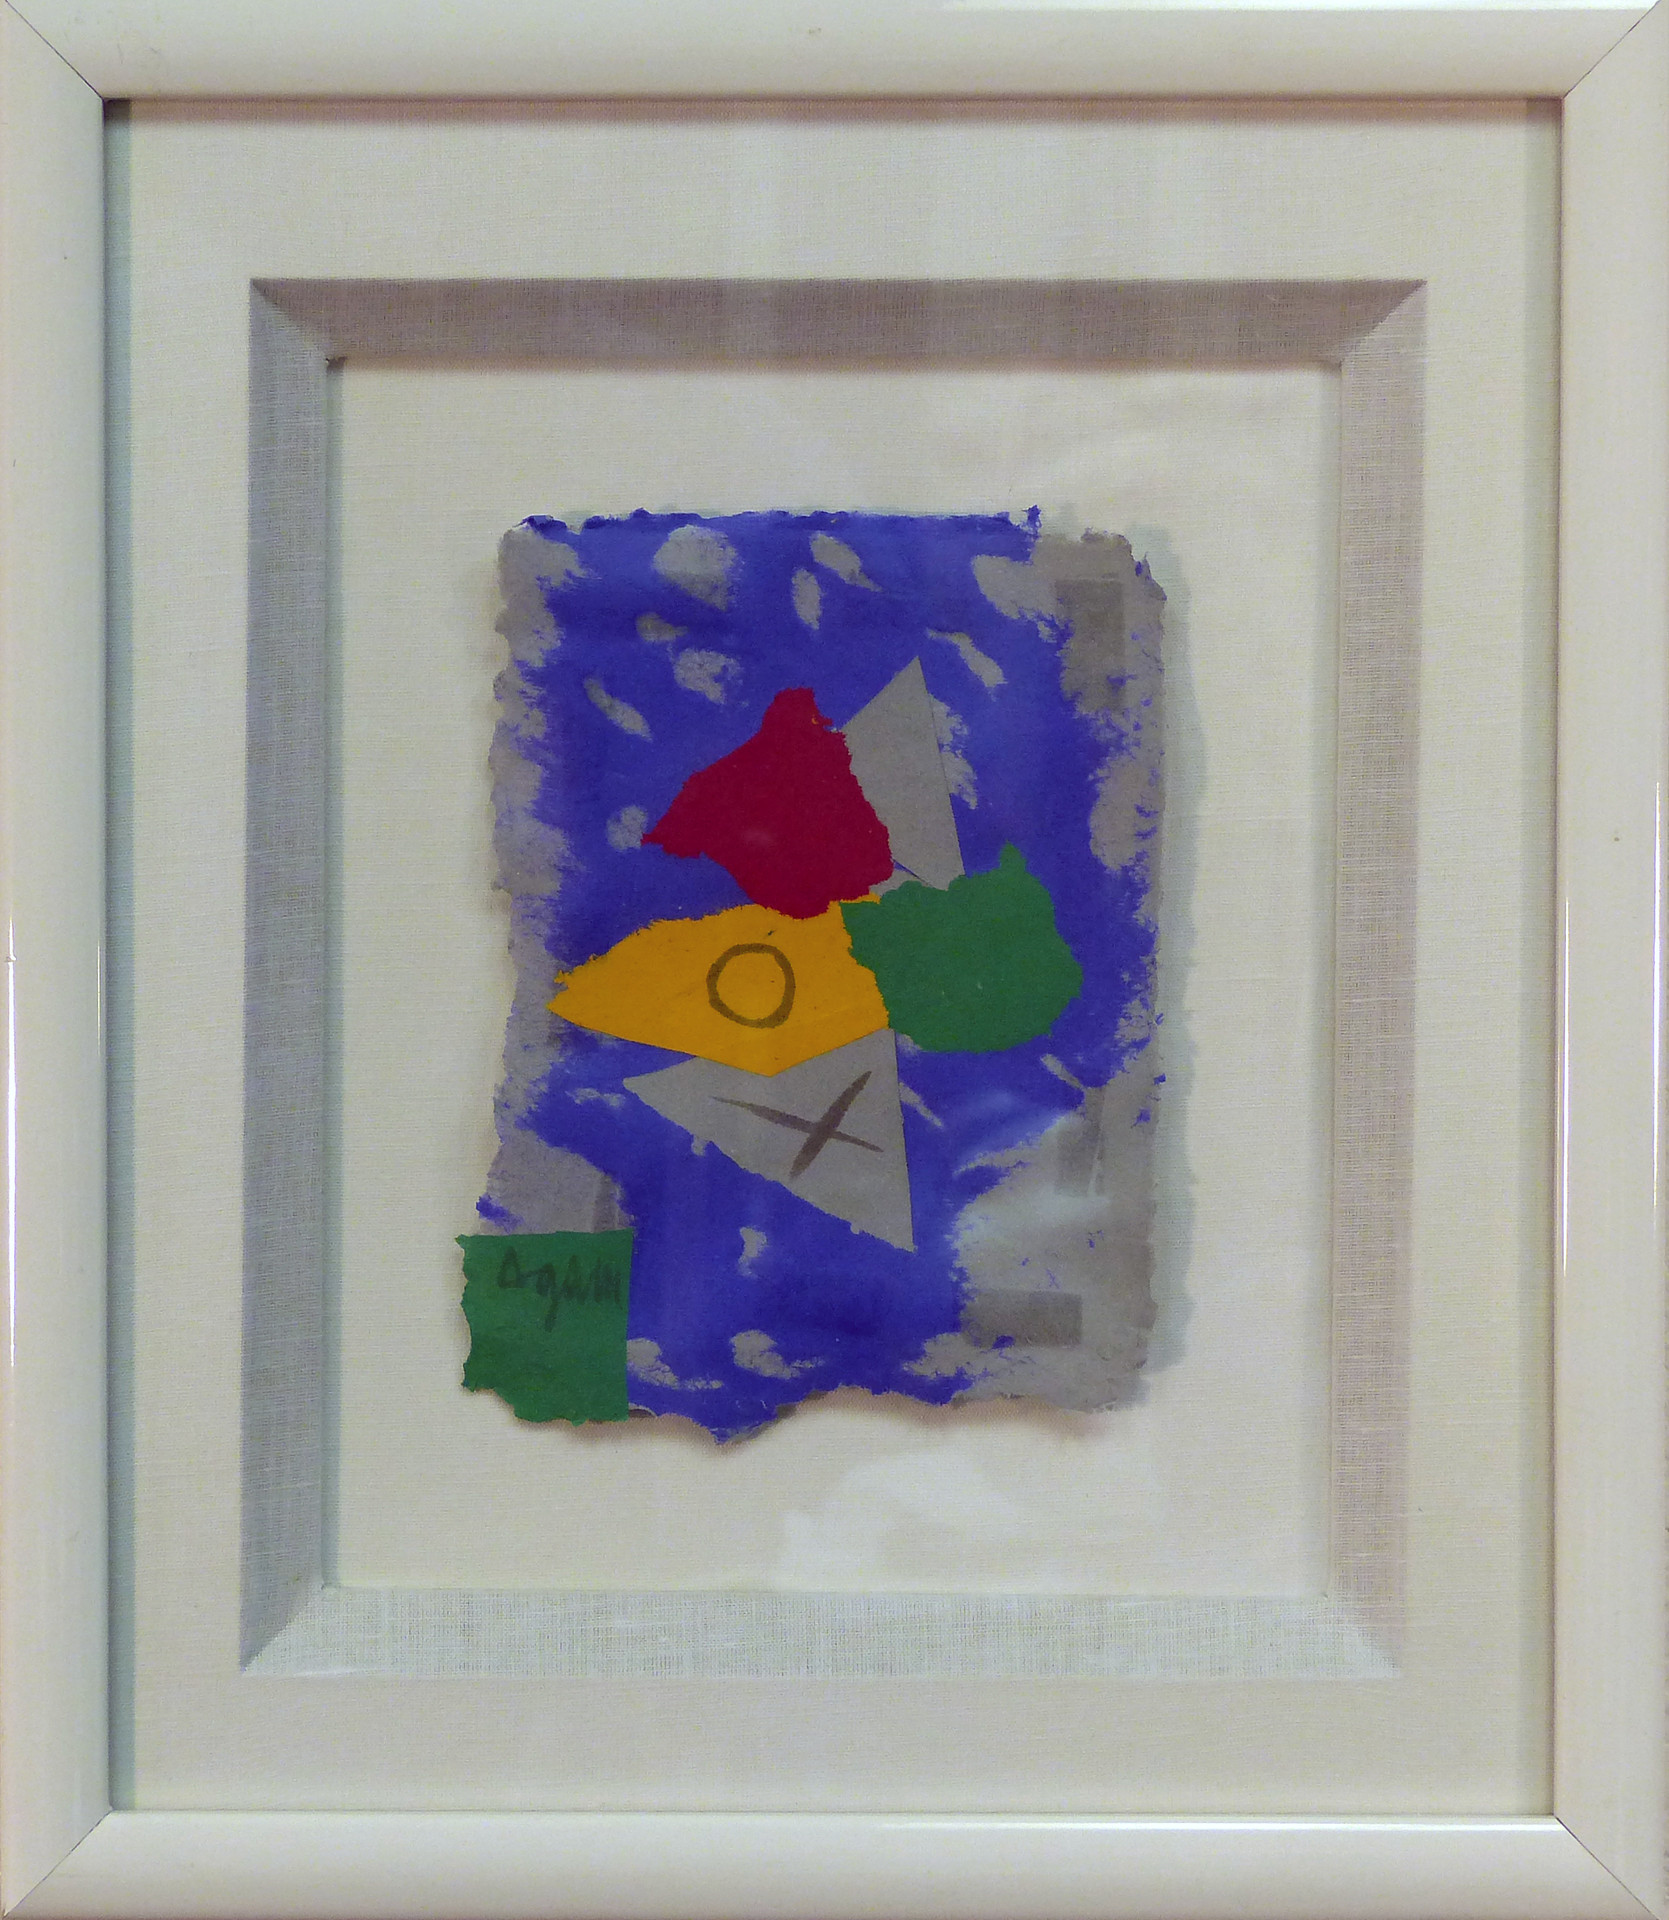 Yaacov Agam/Frank Gallo Mixed media on cast   paper 15 x 12.5 in. Hand-signed lower left   Unique Work